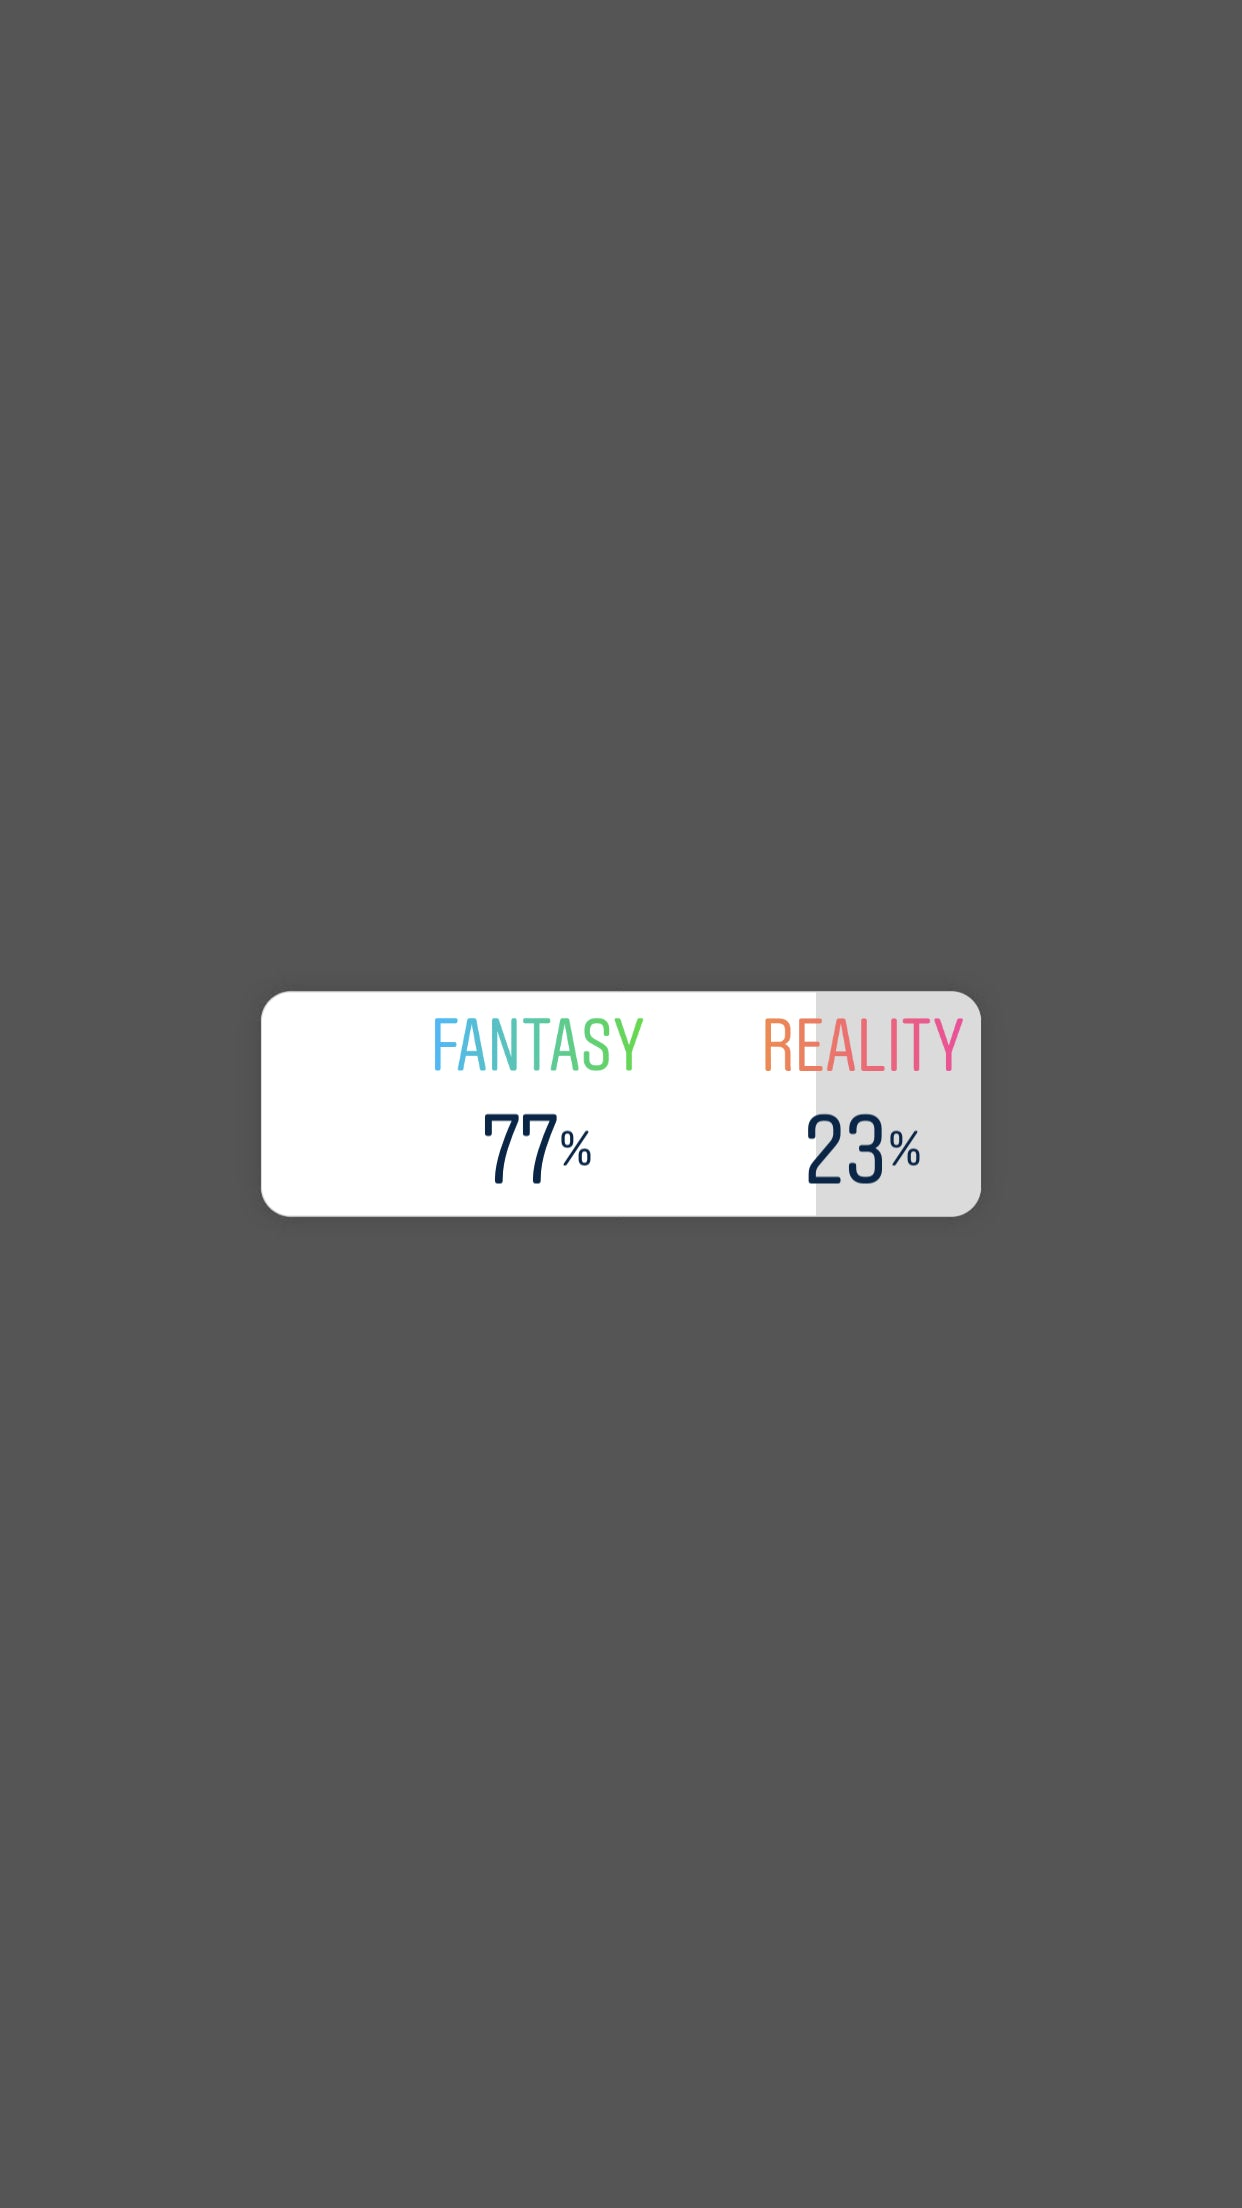 Results of an Instagram Poll on Fantasy and Reality